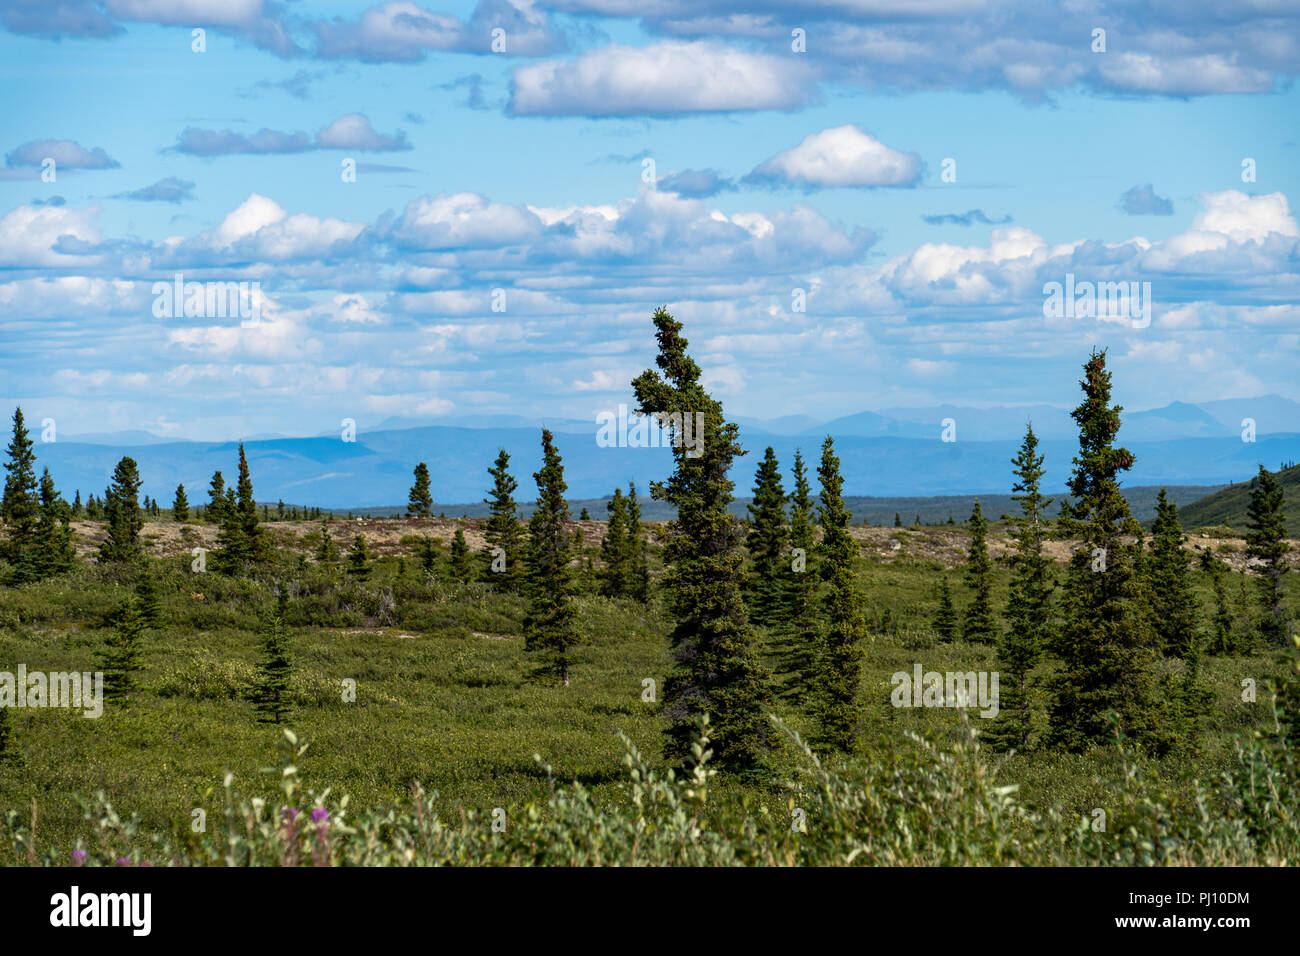 Raw Alaskan wilderness beauty along the Richardson Highway features a boreal tundra forest with Alaska Range mountains and partly cloudy sky - Stock Image